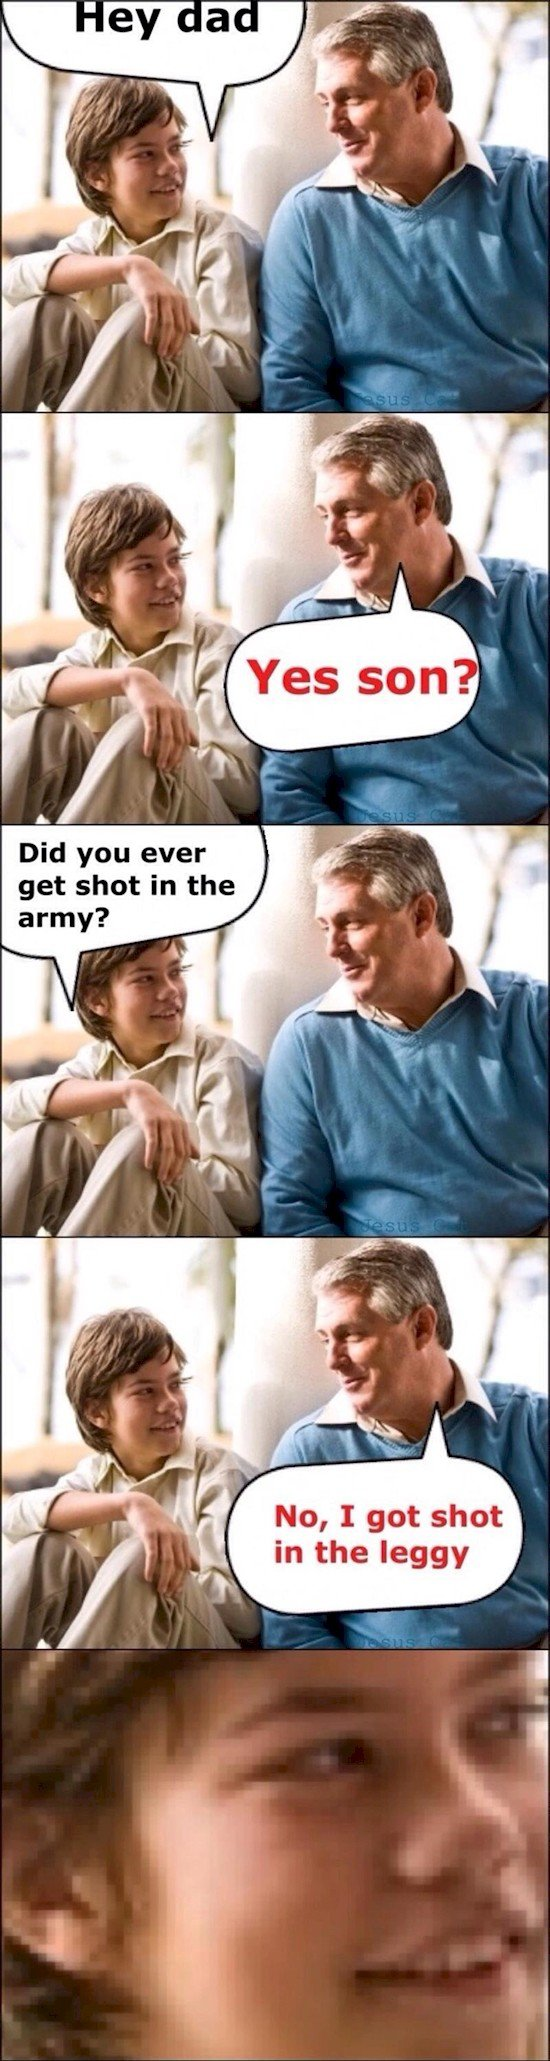 dad army joke